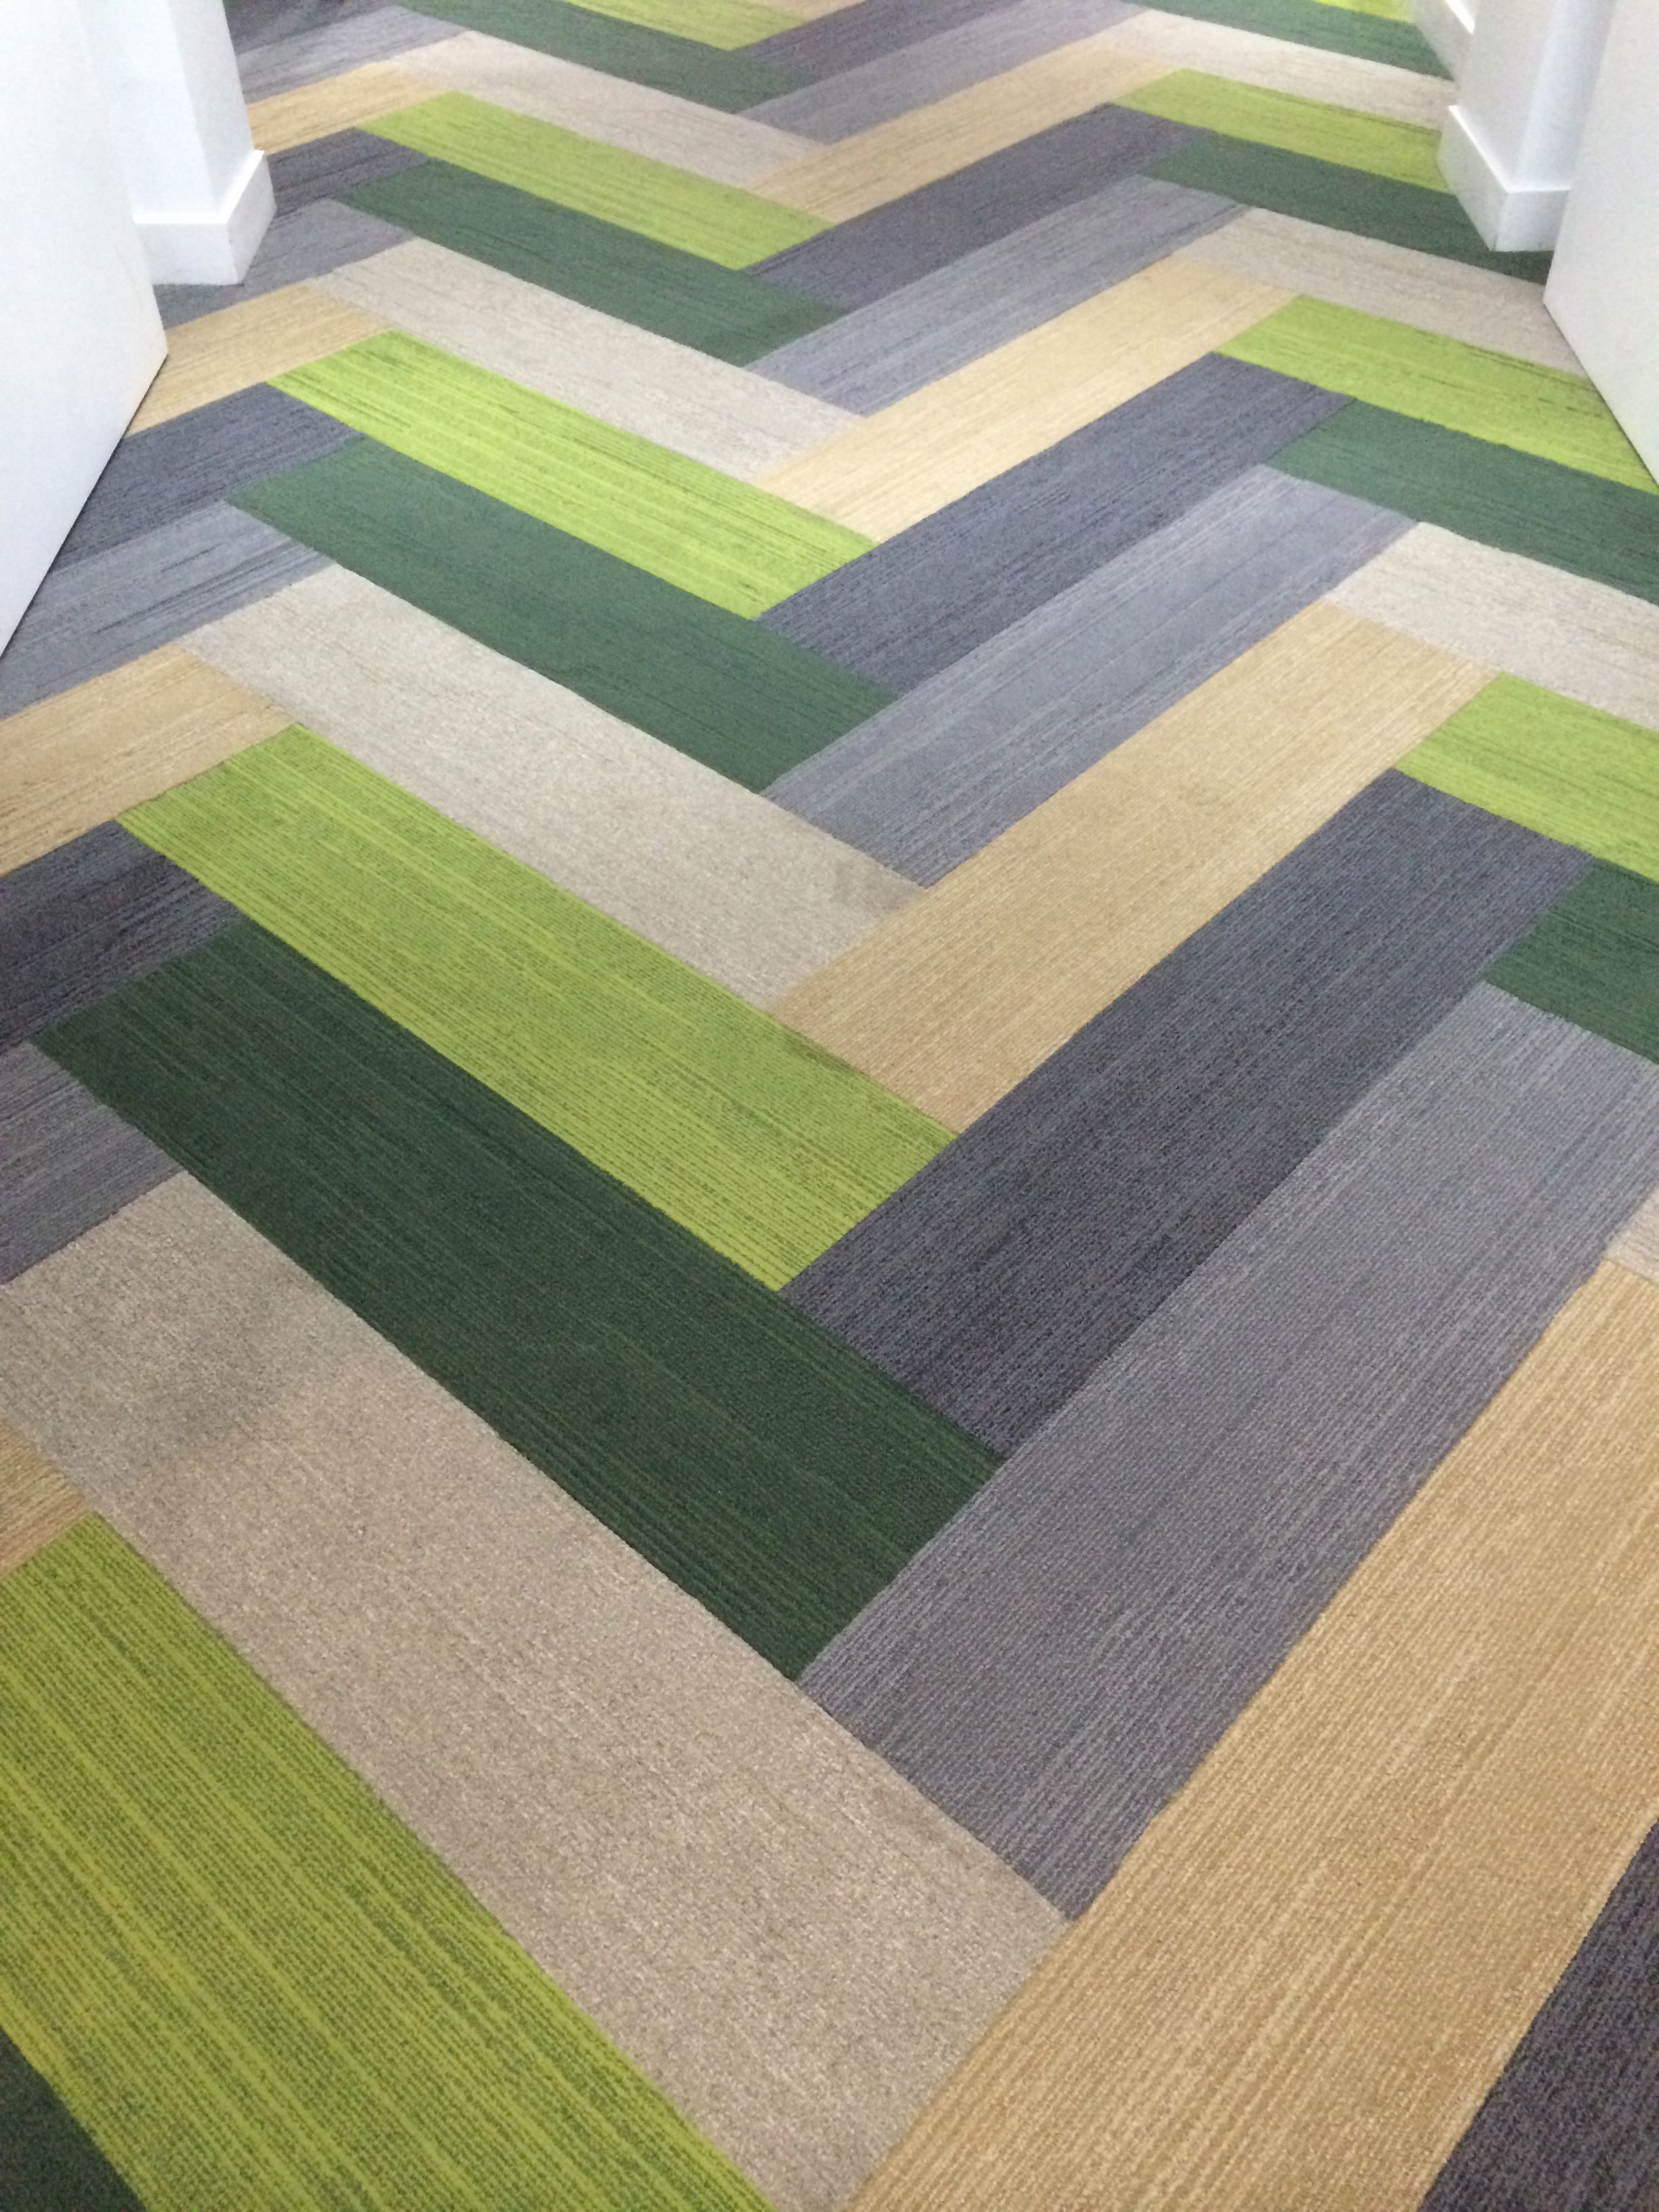 Plank carpet tiles in a herringbone pattern plank carpet tiles plank carpet tiles by interface i love this idea for an outdoor carpet pattern for my porch would go great with the green couch and grey flooring baanklon Choice Image